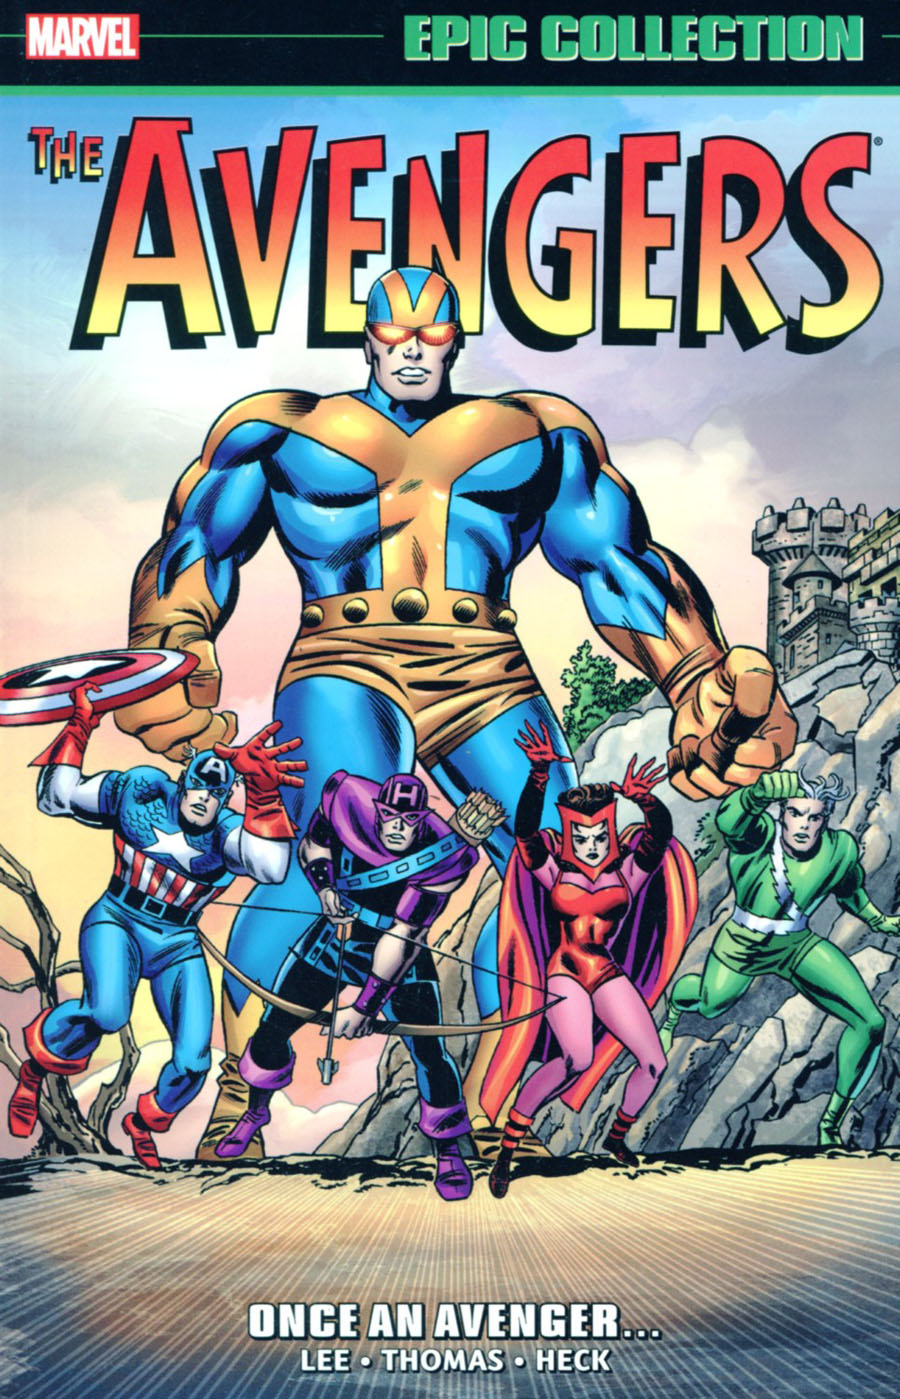 Avengers Epic Collection Vol 2 Once An Avenger TP